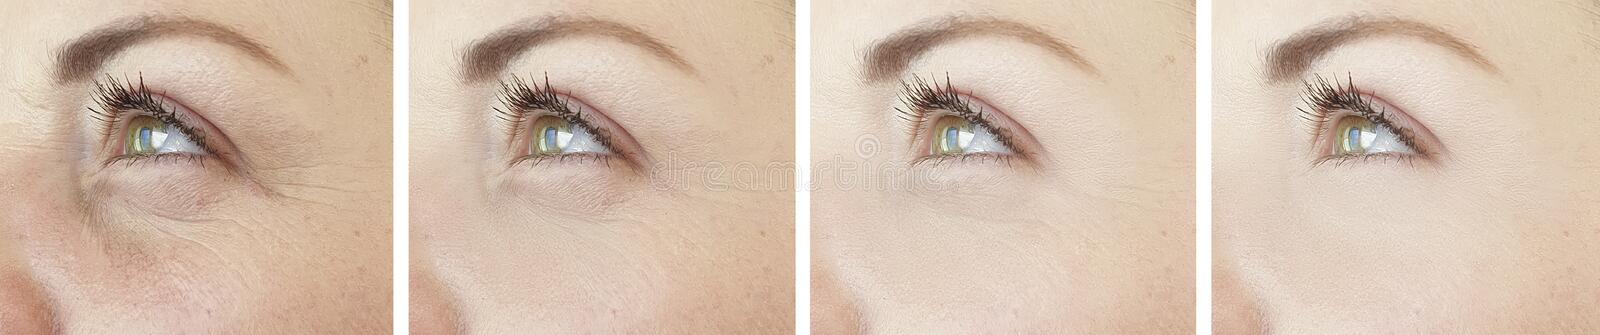 Woman eyes wrinkles collage regeneration cosmetology difference before after treatment. Woman eyes wrinkles before and after treatment collage difference stock photography